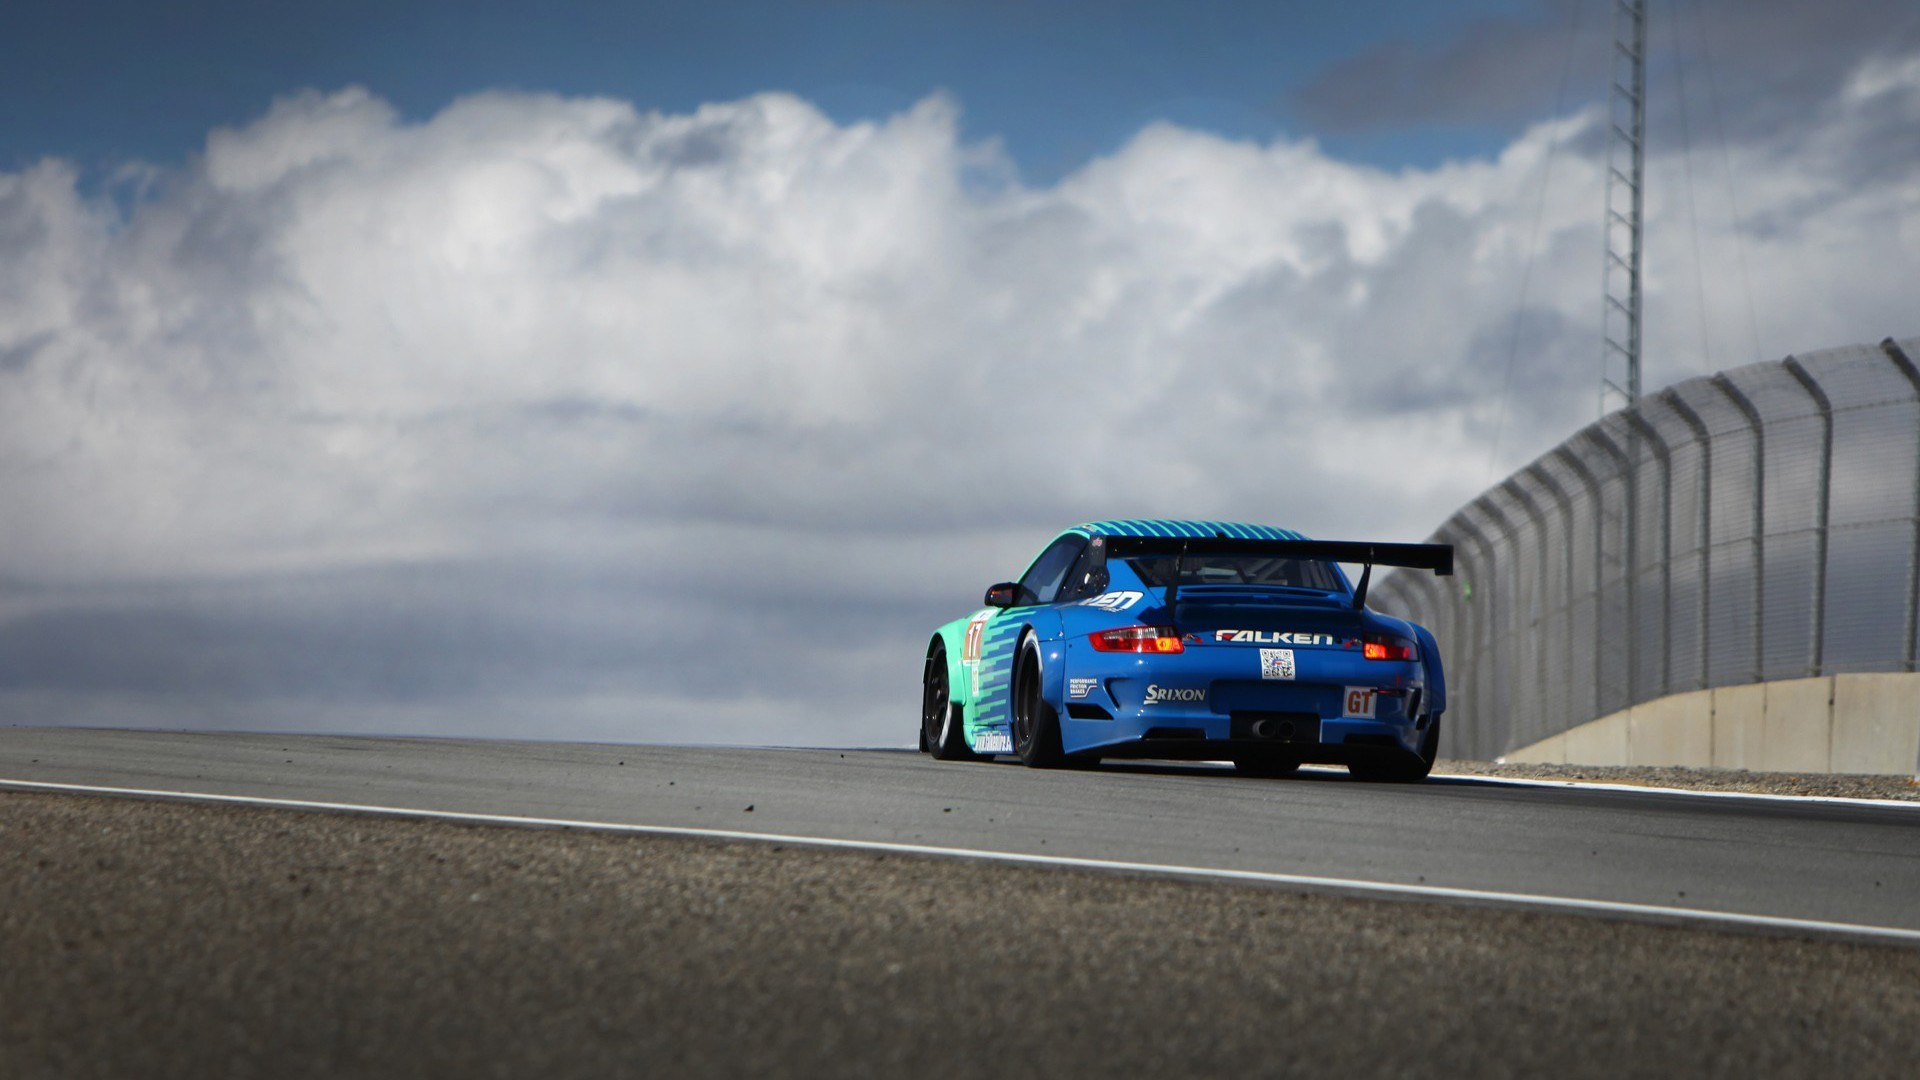 Race Car Wallpaper 1080p Falken Porsche Cars Drifting Wallpaper Allwallpaper In